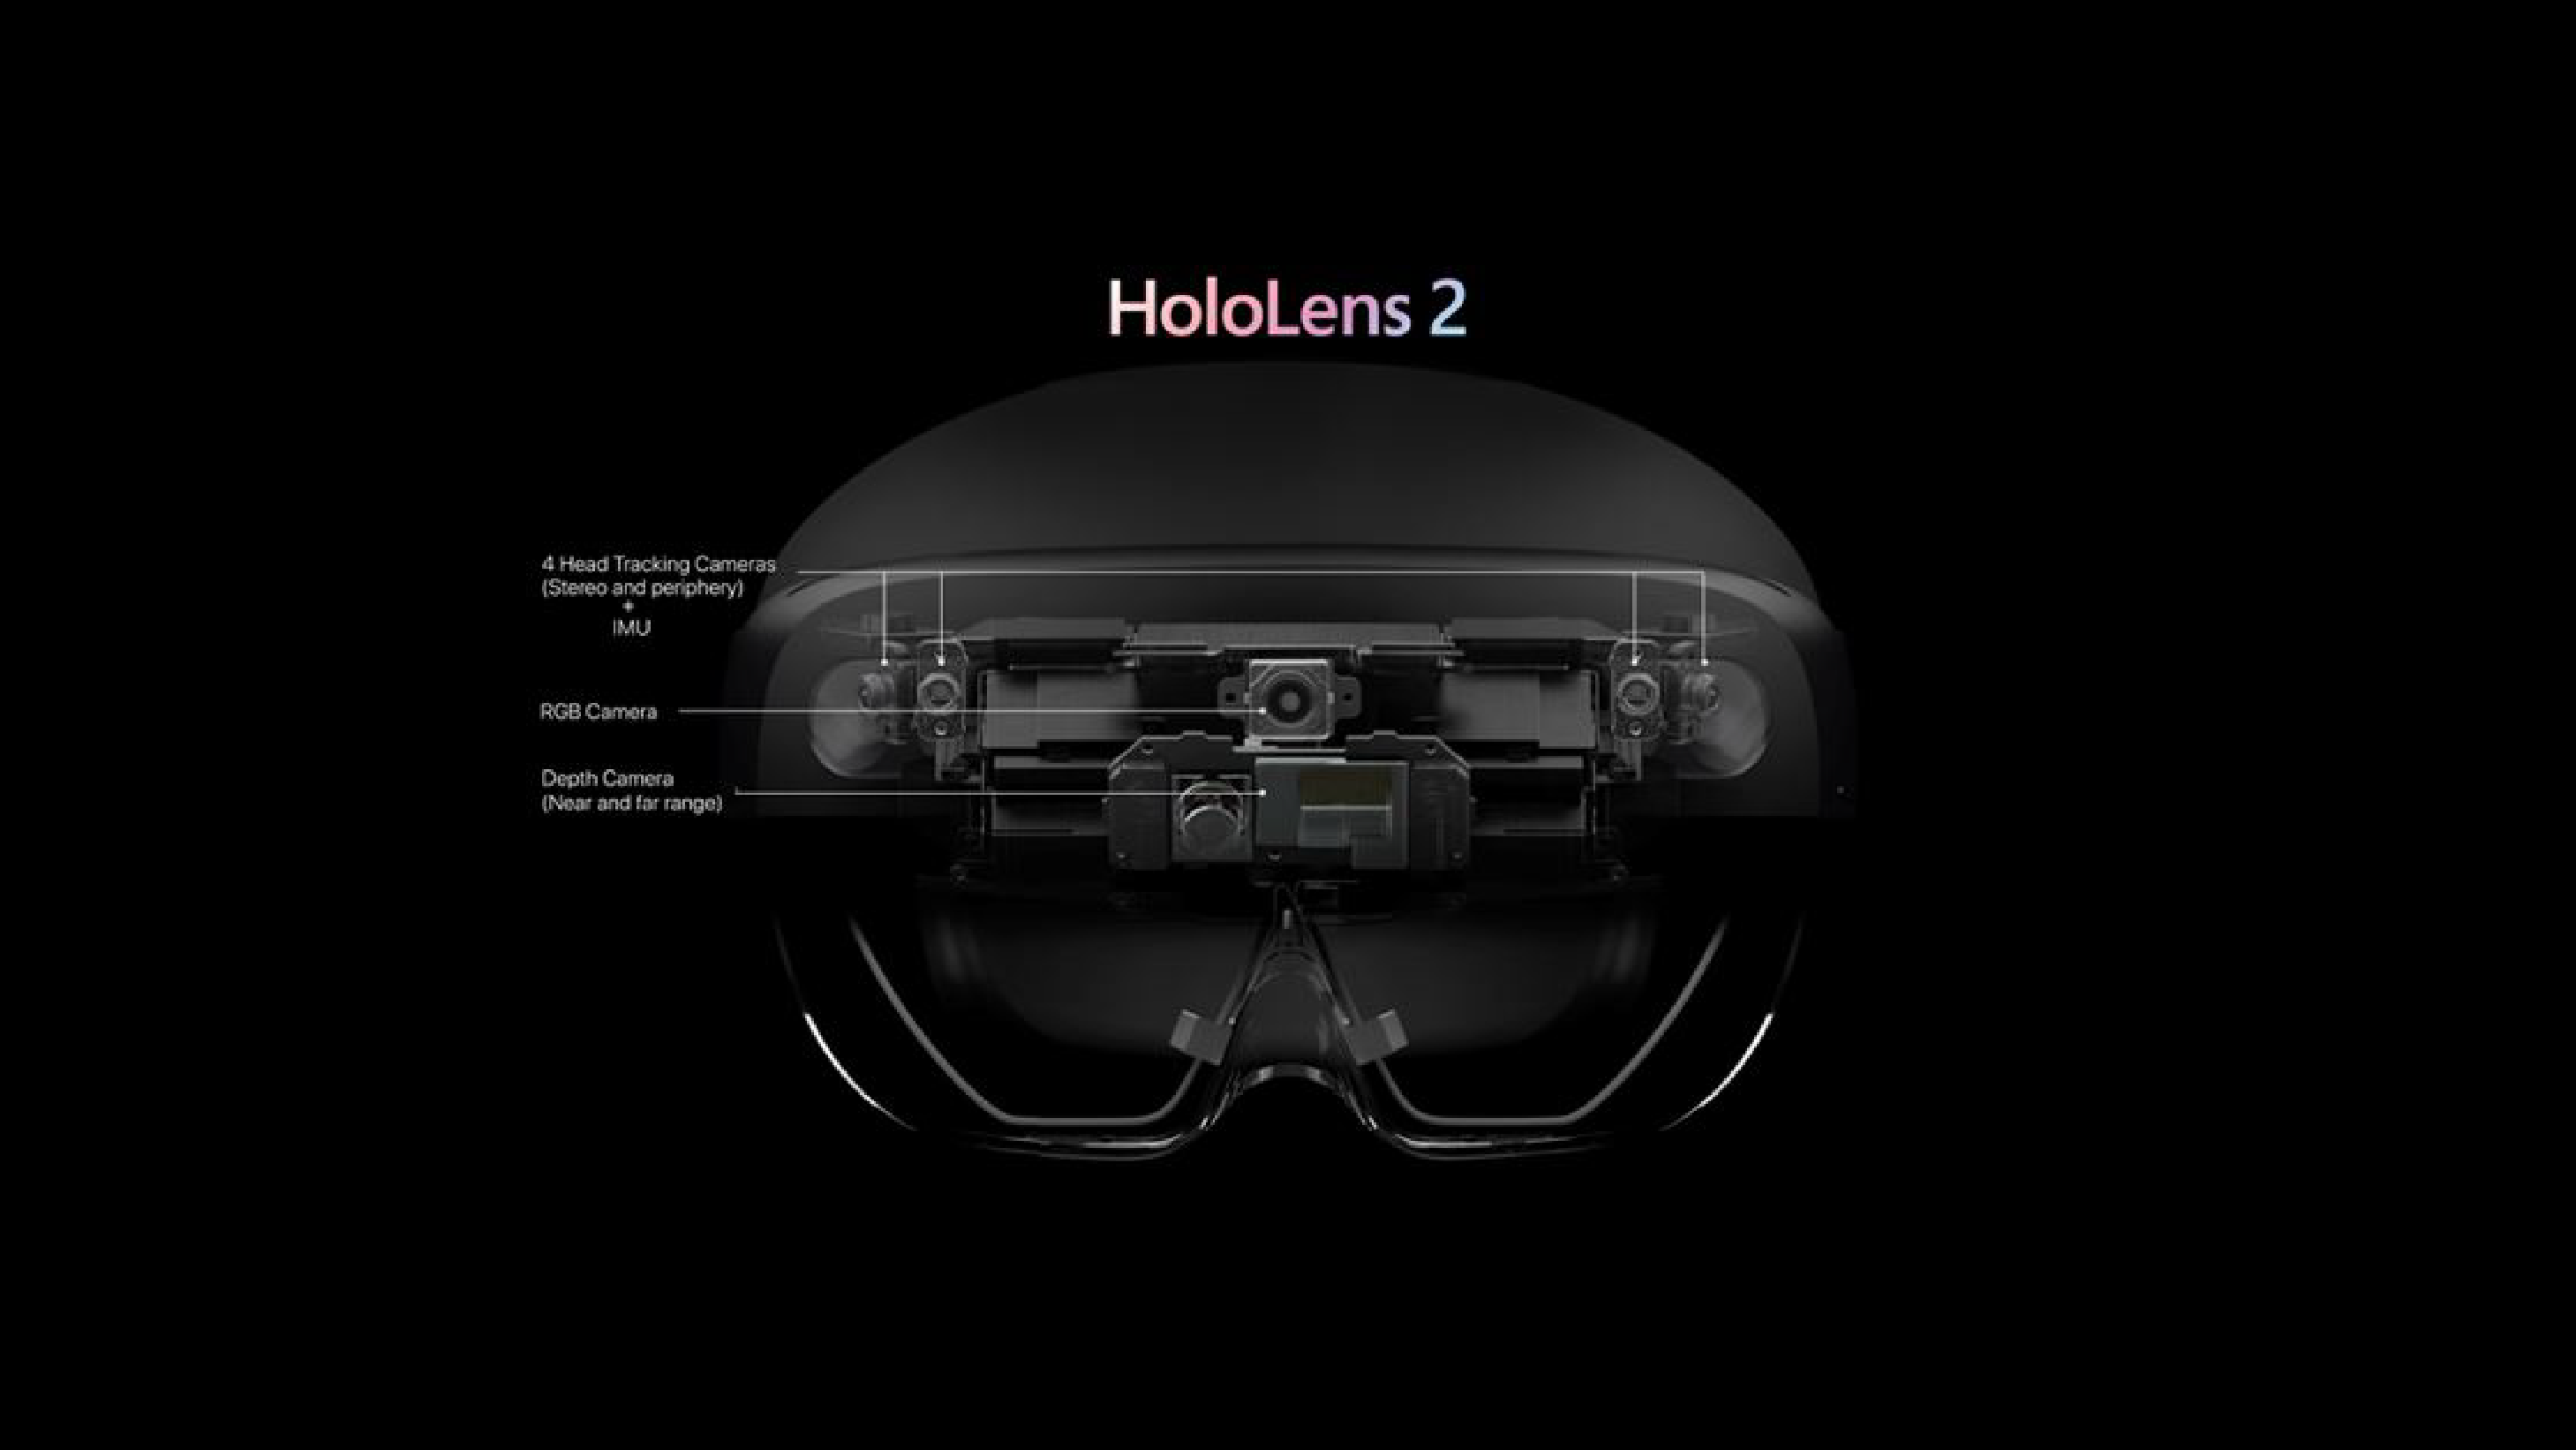 Microsoft HoloLens 2: Improved Research Mode to facilitate computer vision research